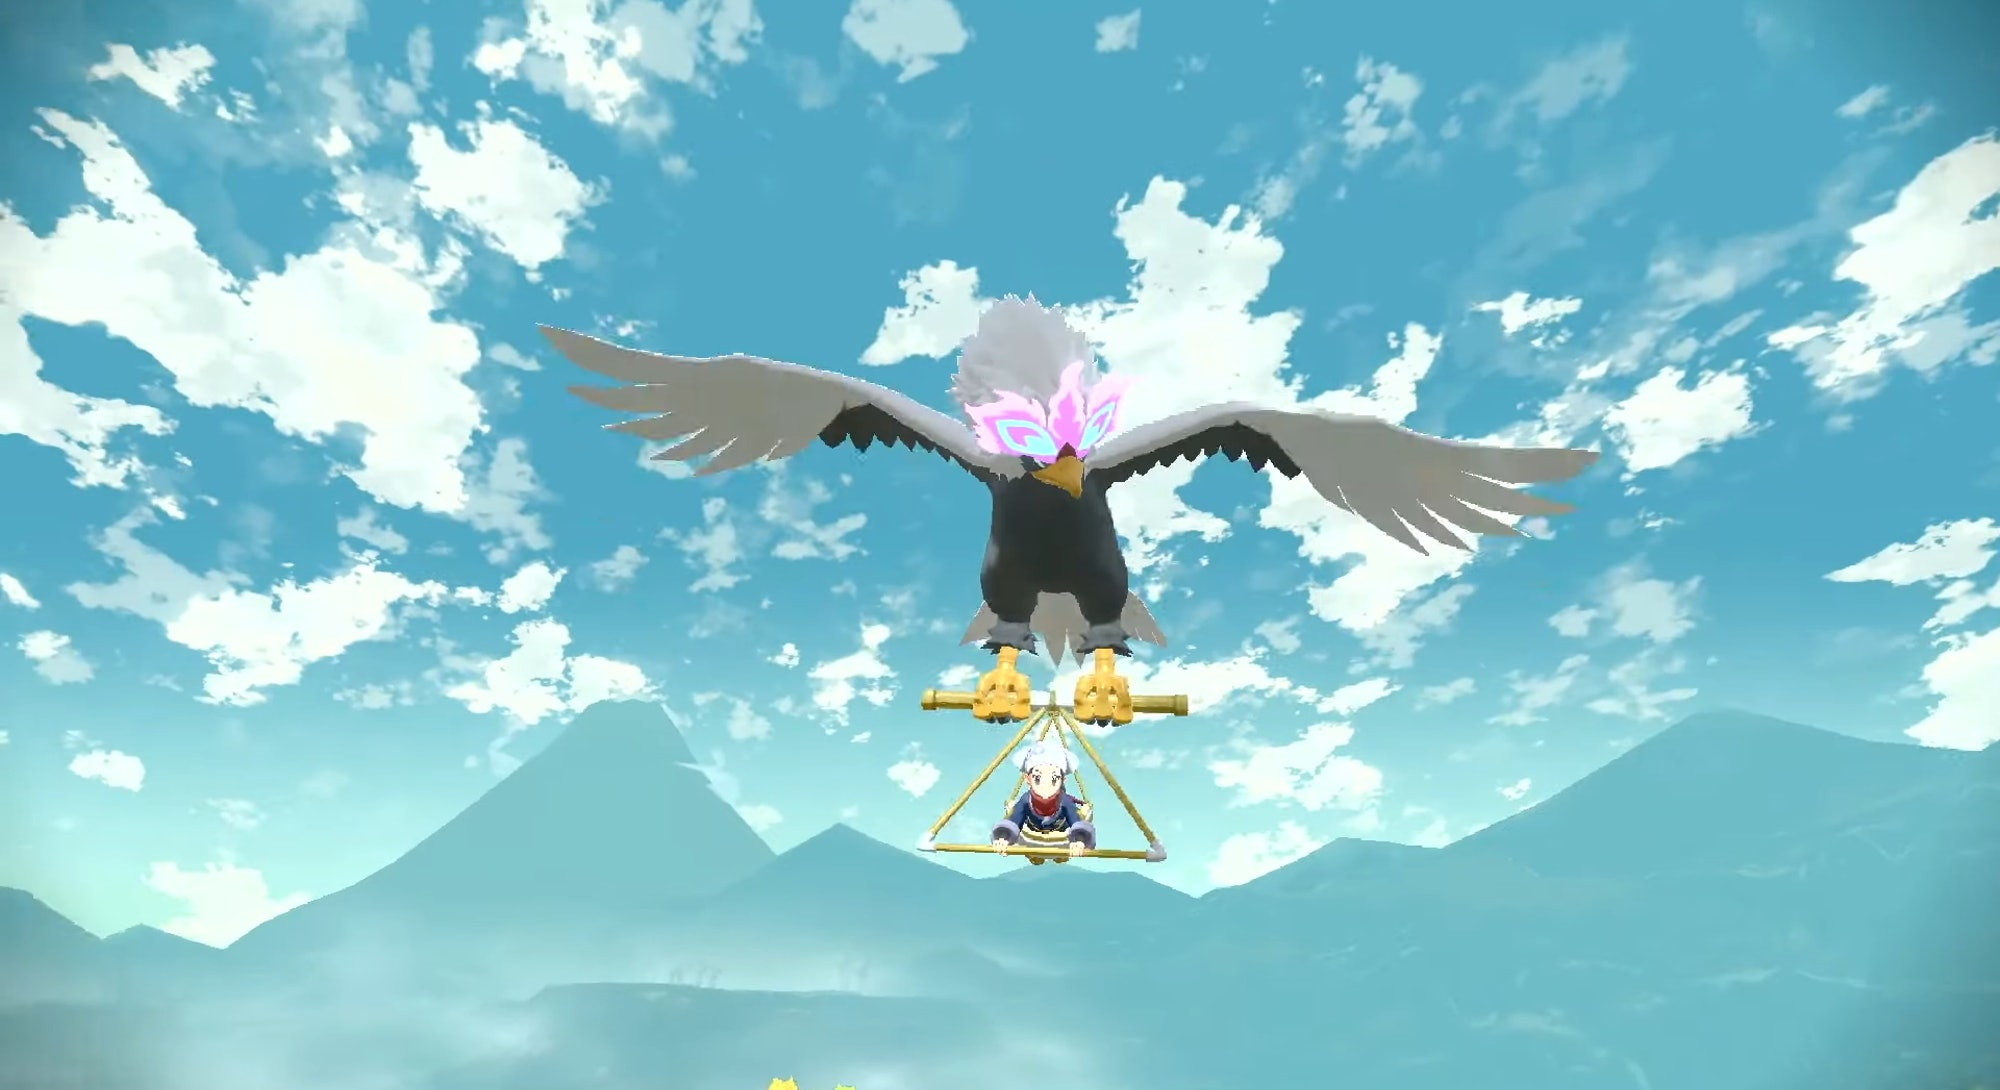 Player can fly around on Hisuian Braviary